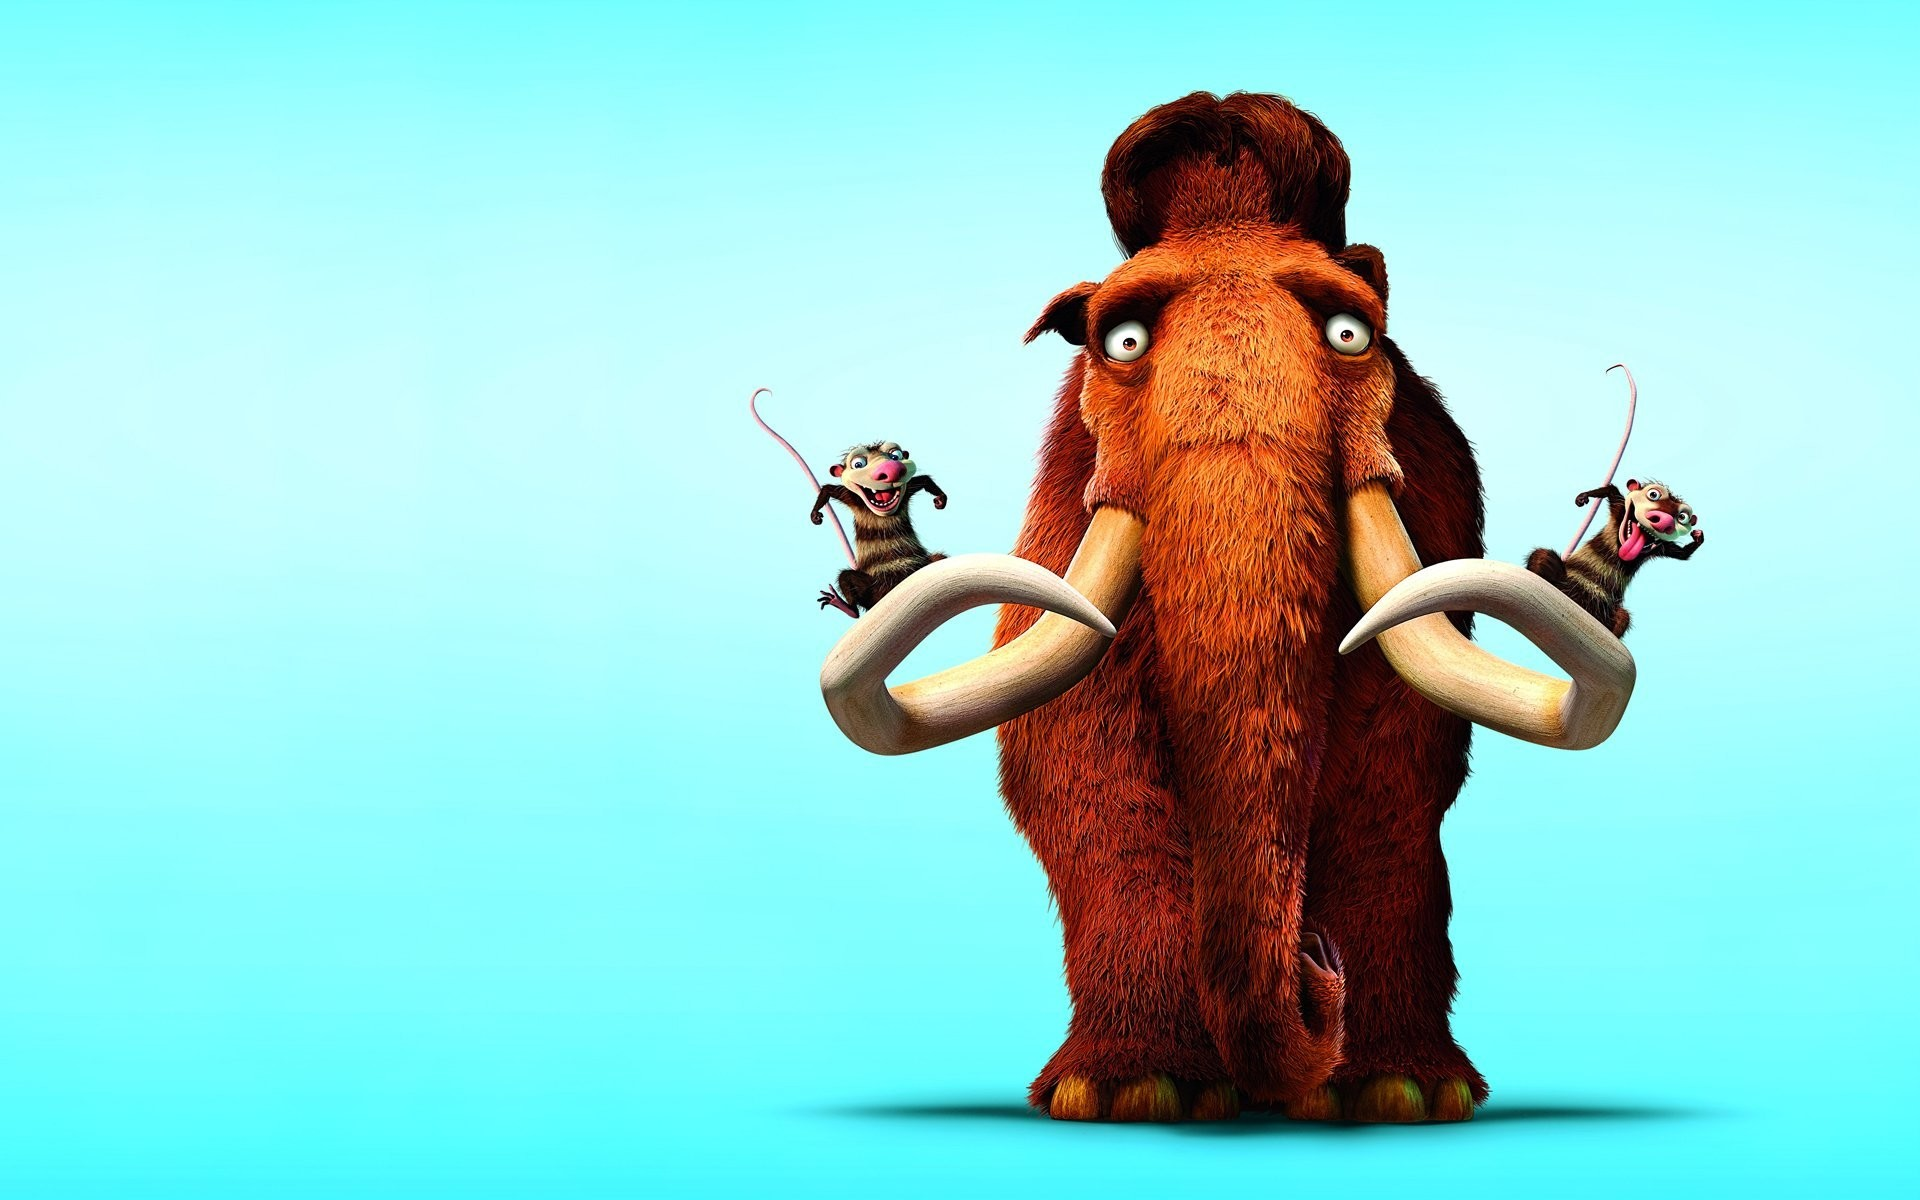 1920x1200 ice age ice age blue background mammoth rodents view